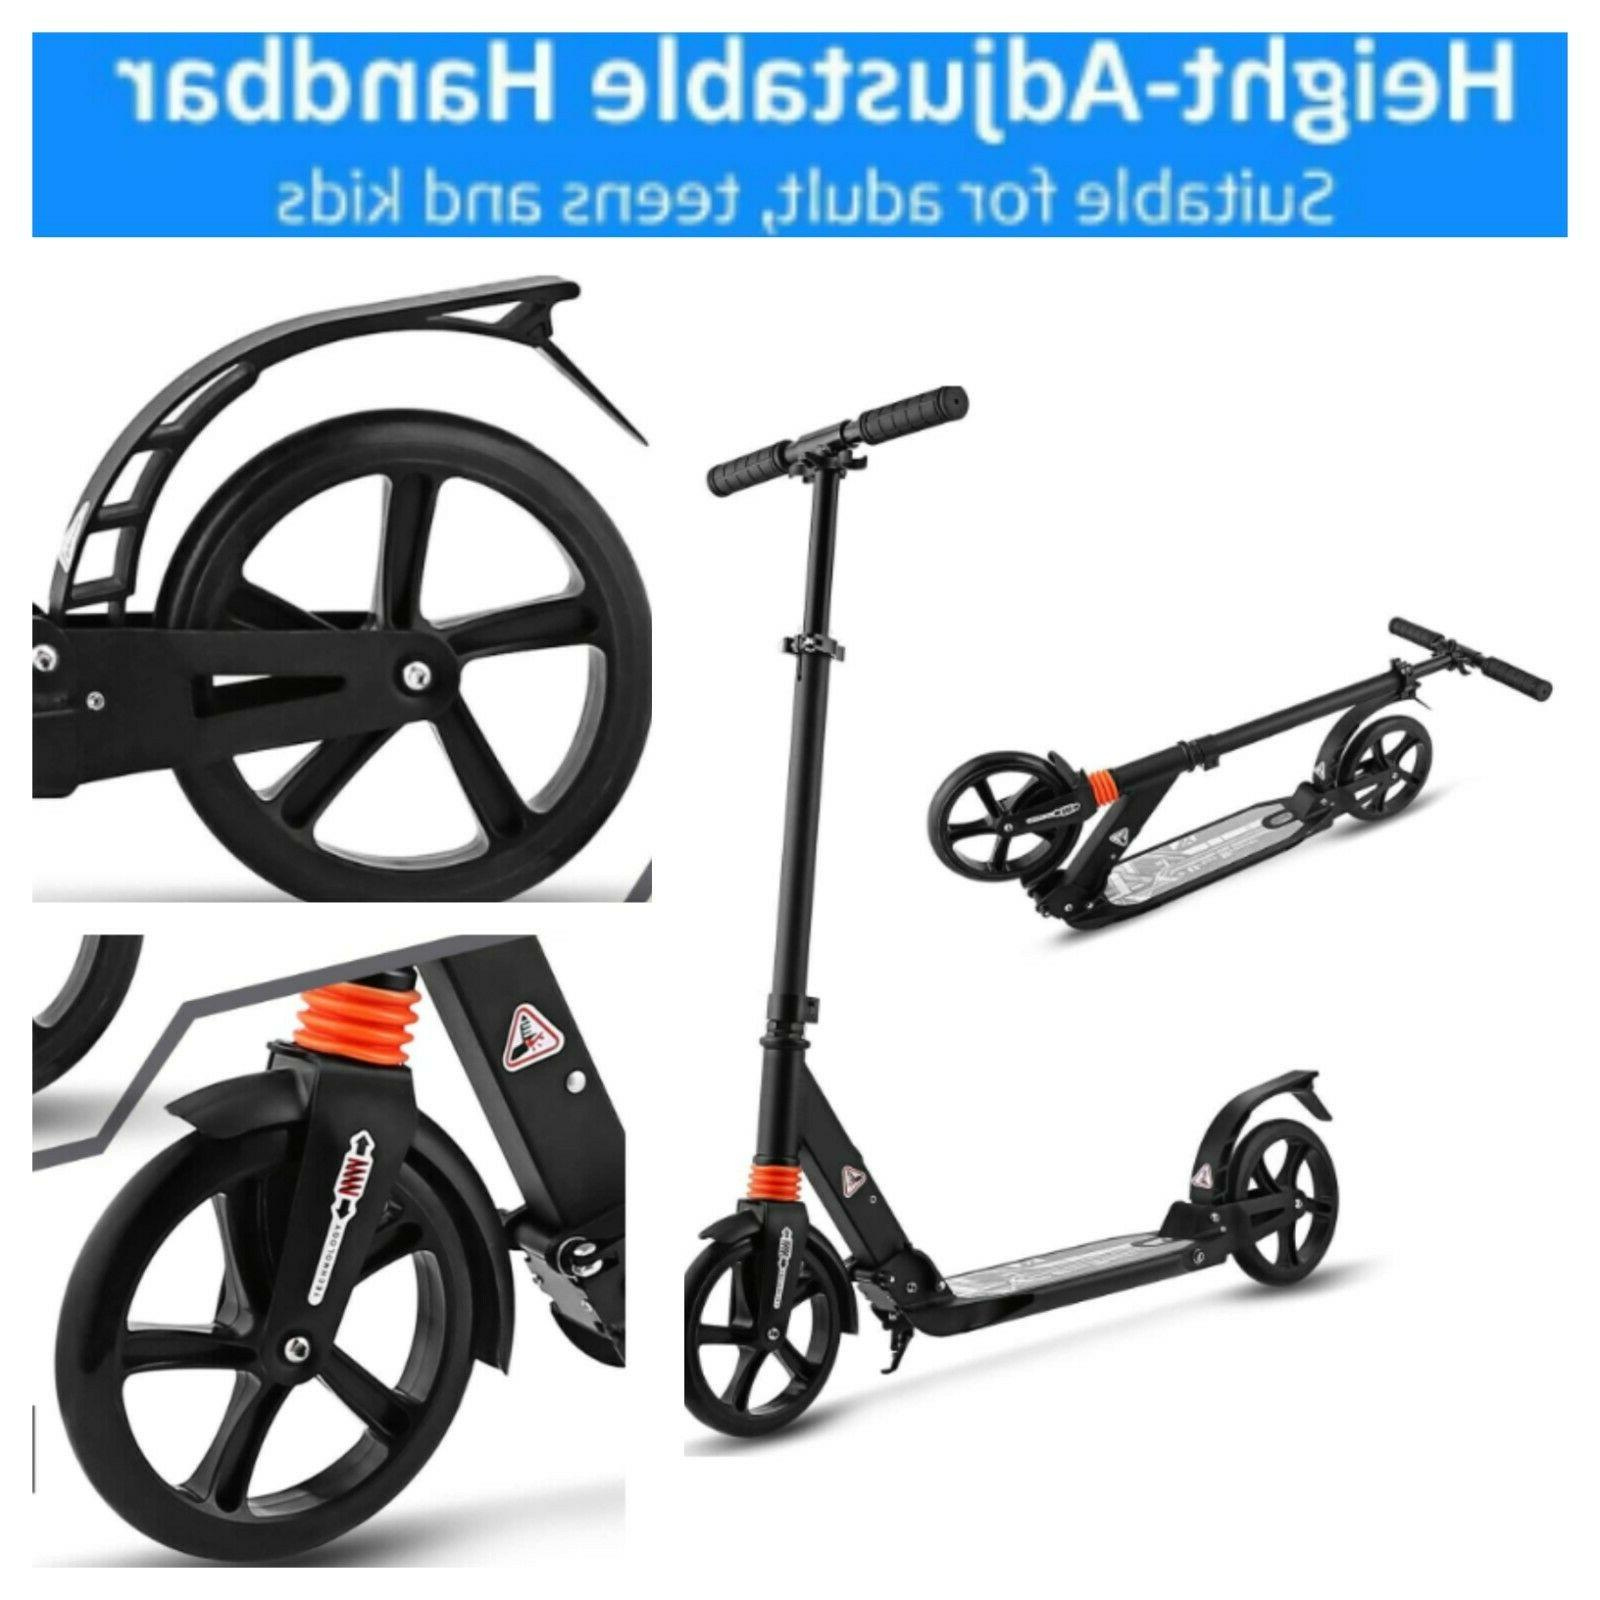 foldable scooter adults capacity 220lb height adjustable